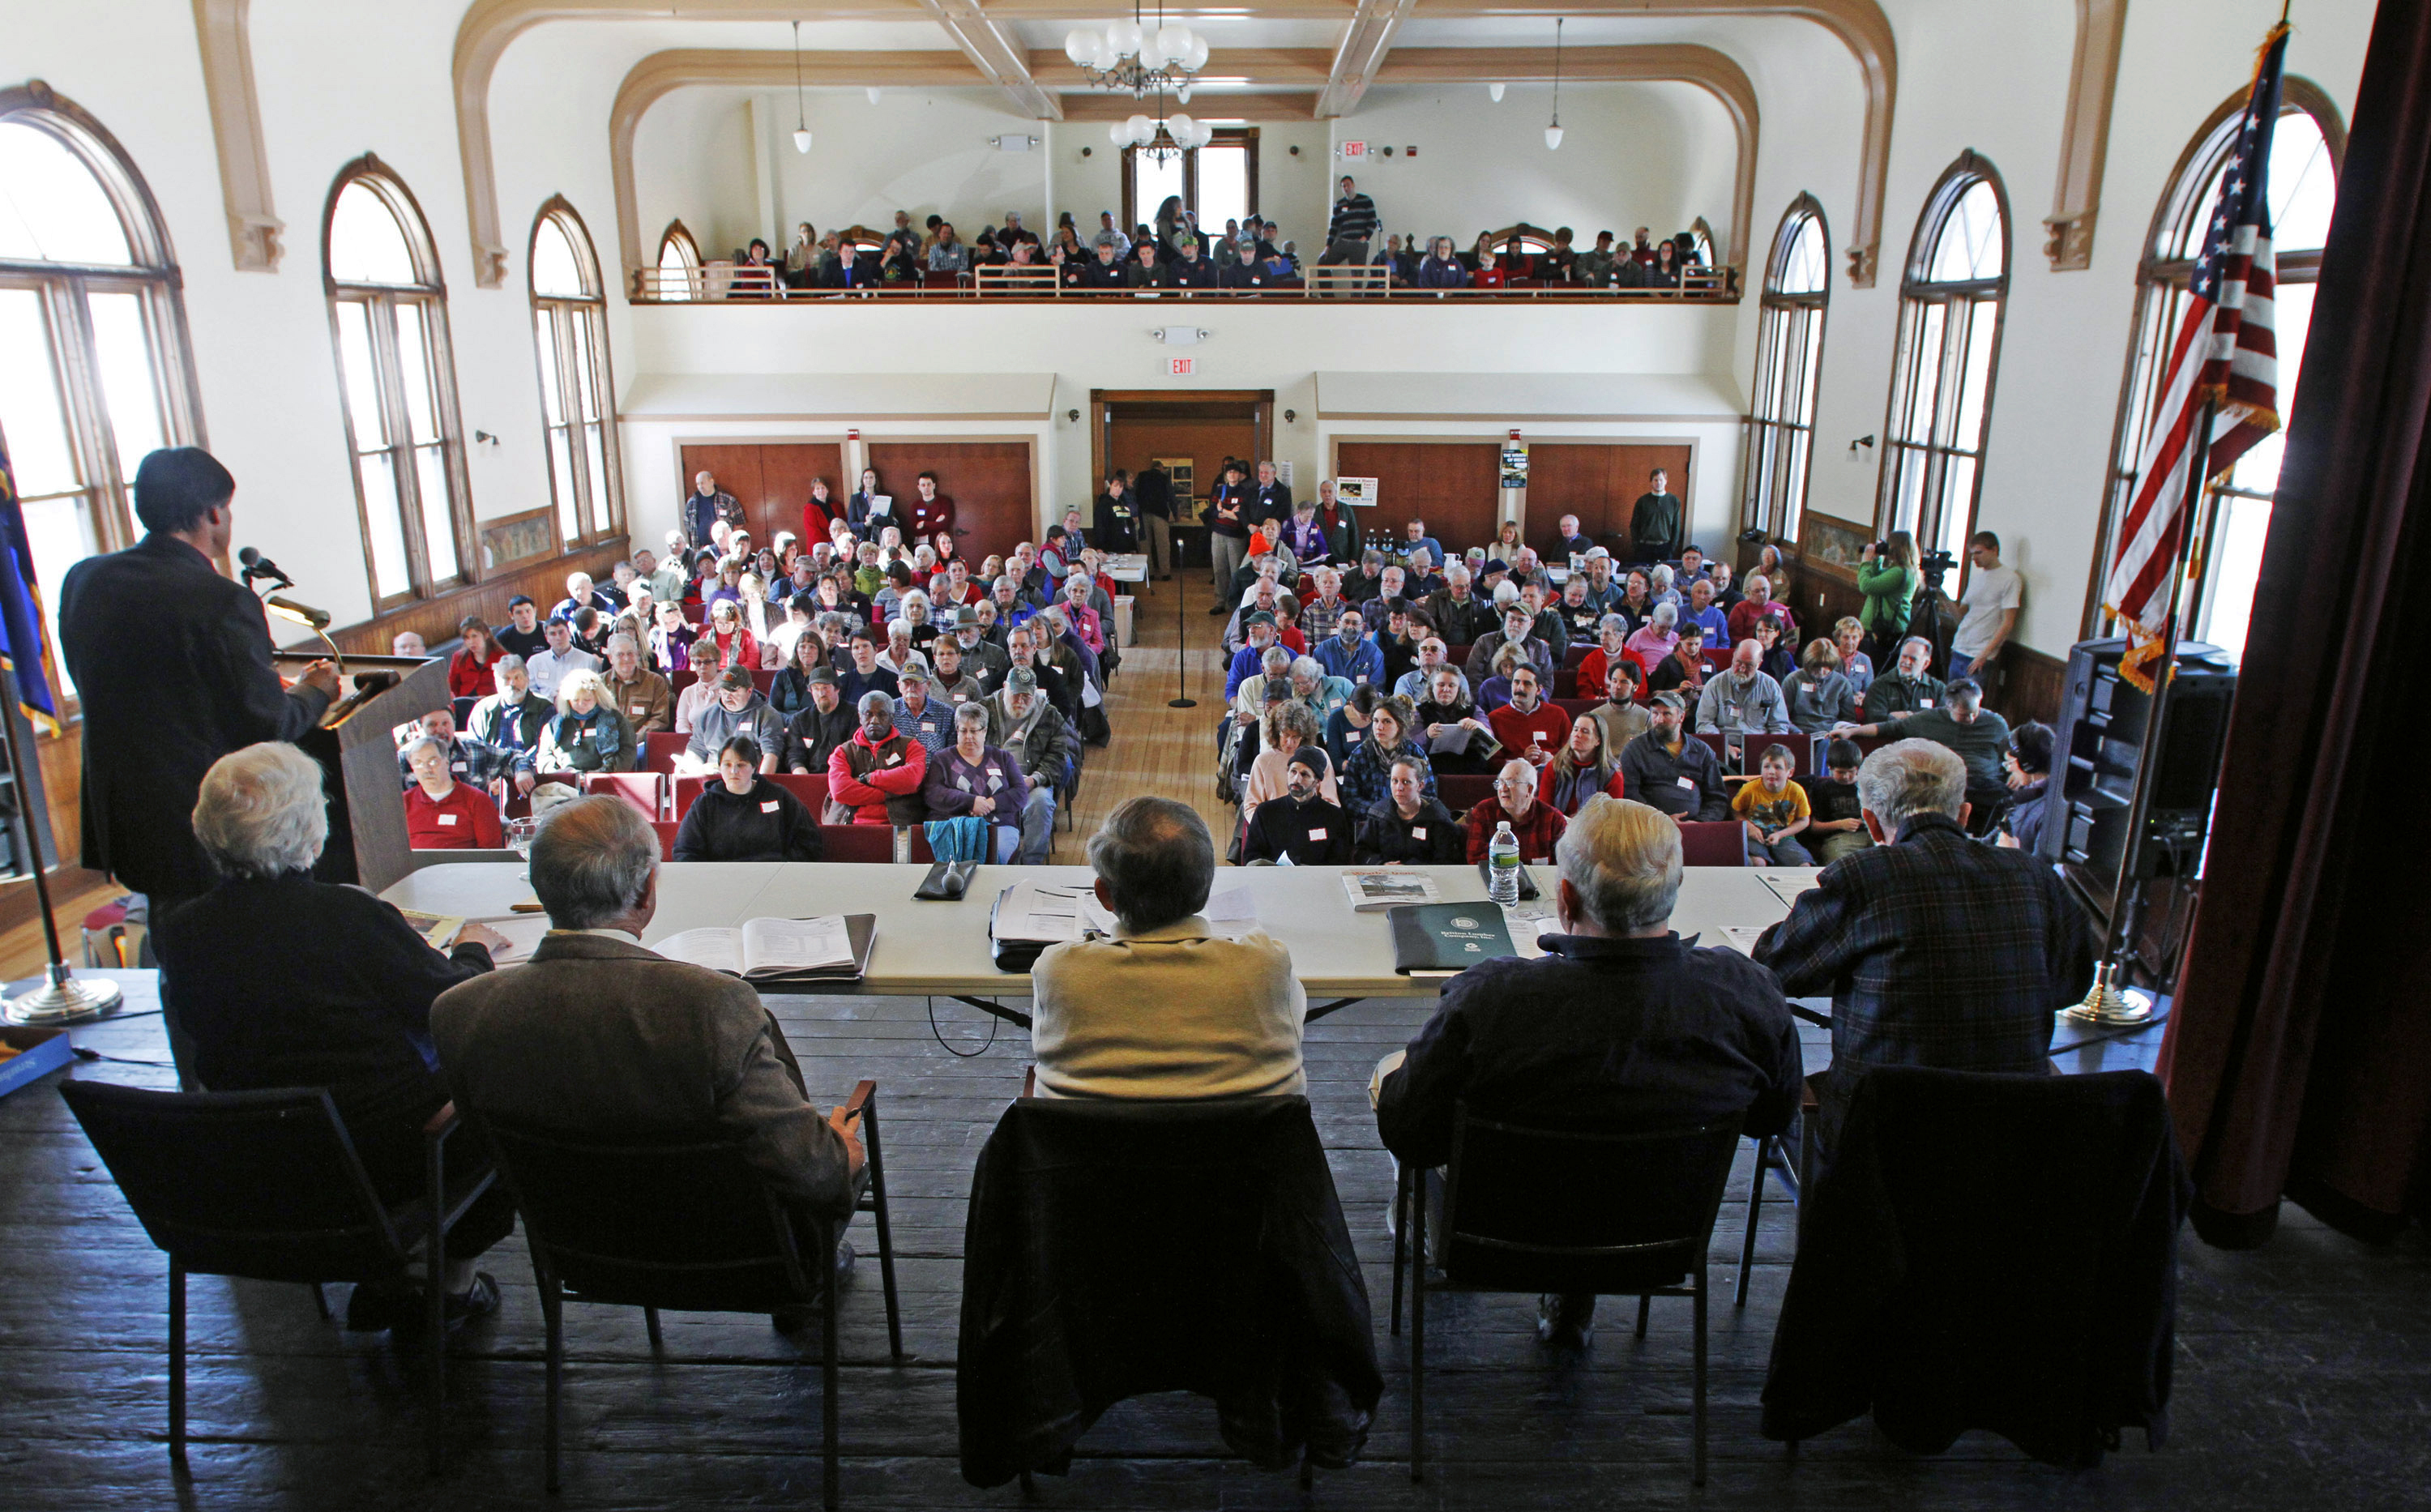 In this March 6, 2012, file photo, officials preside over the annual town meeting in Bethel, Vt. The COVID-19 pandemic is disrupting New England town meetings in 2021, a tradition where citizens gather to debate and decide on local issues. (Toby Talbot/AP File)